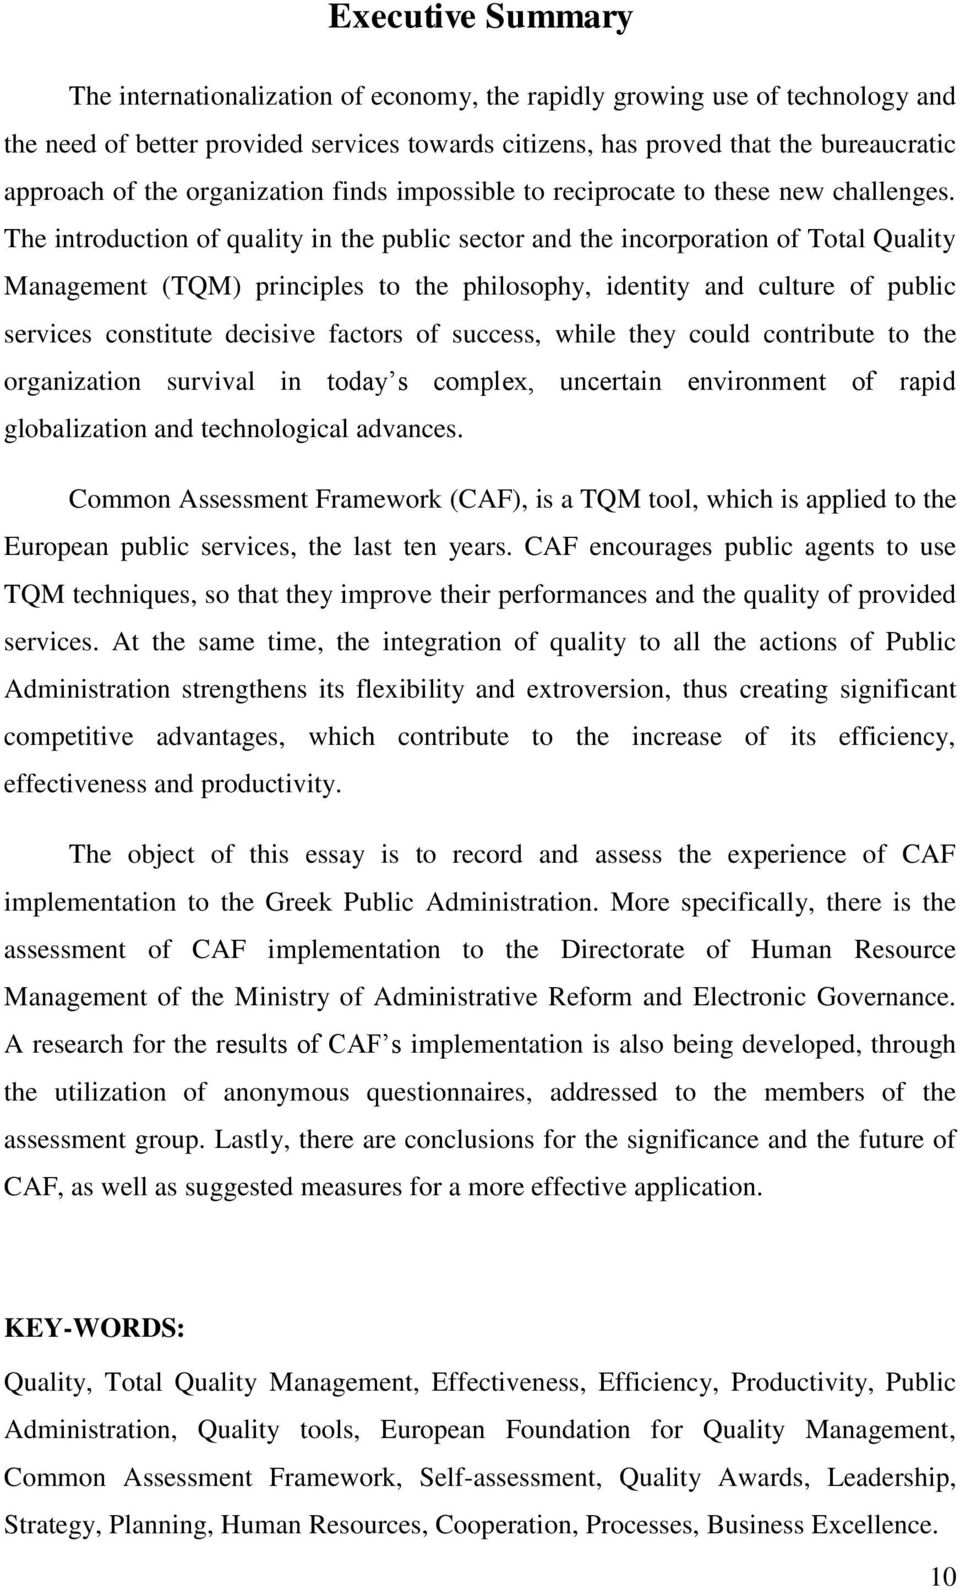 The introduction of quality in the public sector and the incorporation of Total Quality Management (TQM) principles to the philosophy, identity and culture of public services constitute decisive